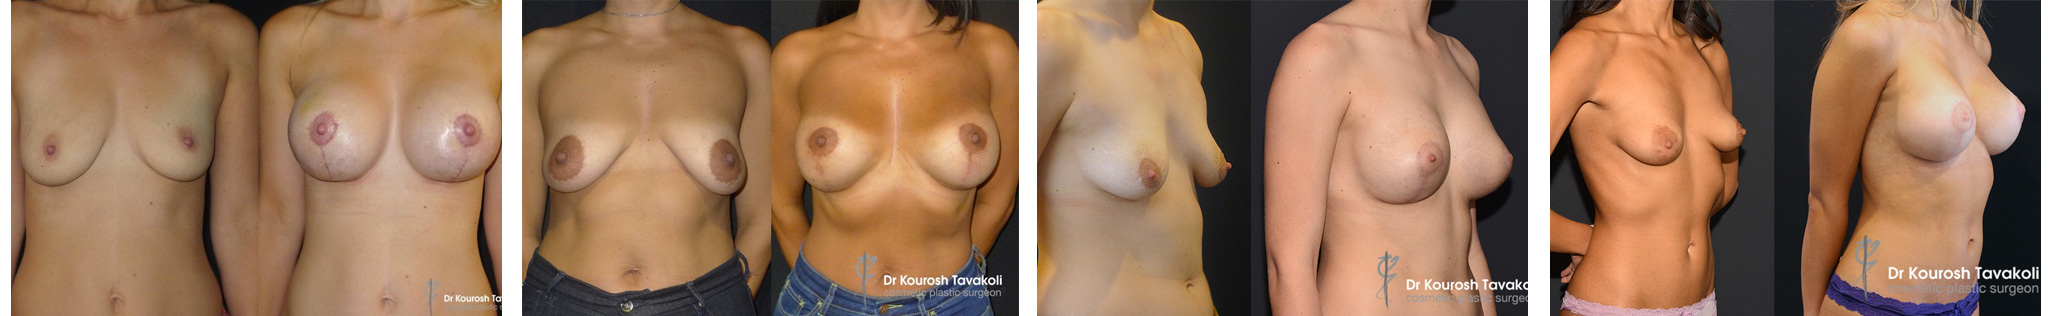 Breast lift mastopexy before and after gallery